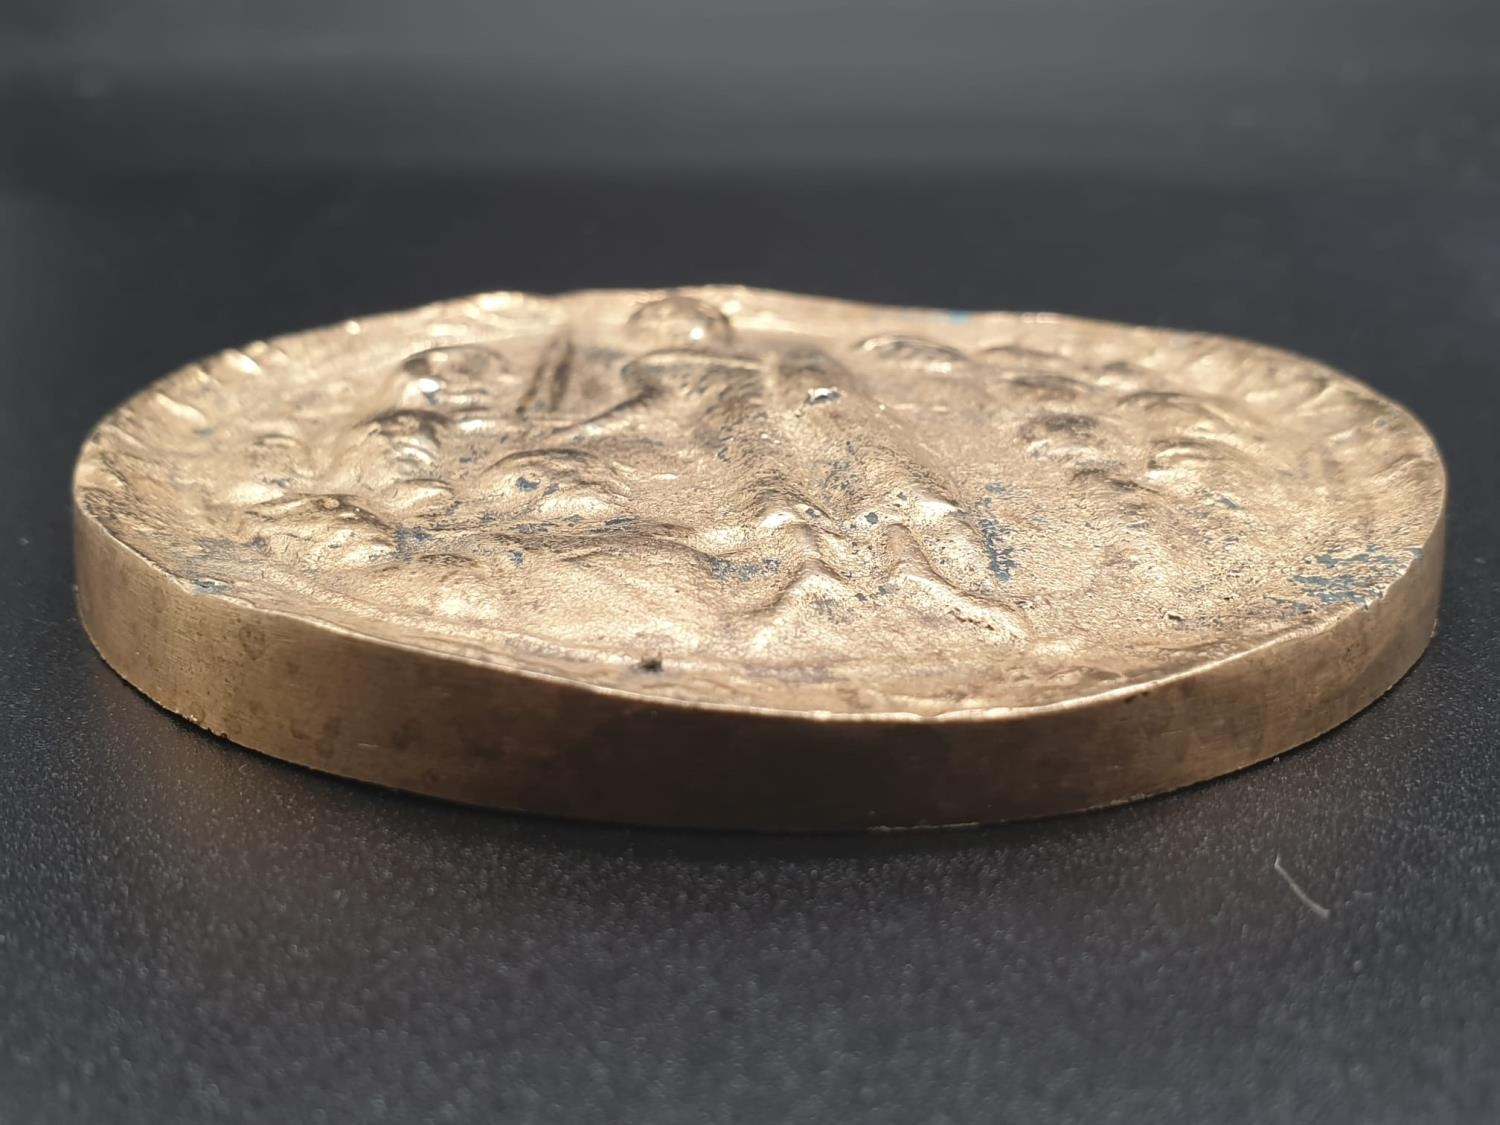 A HEAVY GILDED LARGE ONE SIDED COIN WITH TOP SIDE SEEMINGLY HAMMERED. 285.6gms 8cms diameter - Image 3 of 5